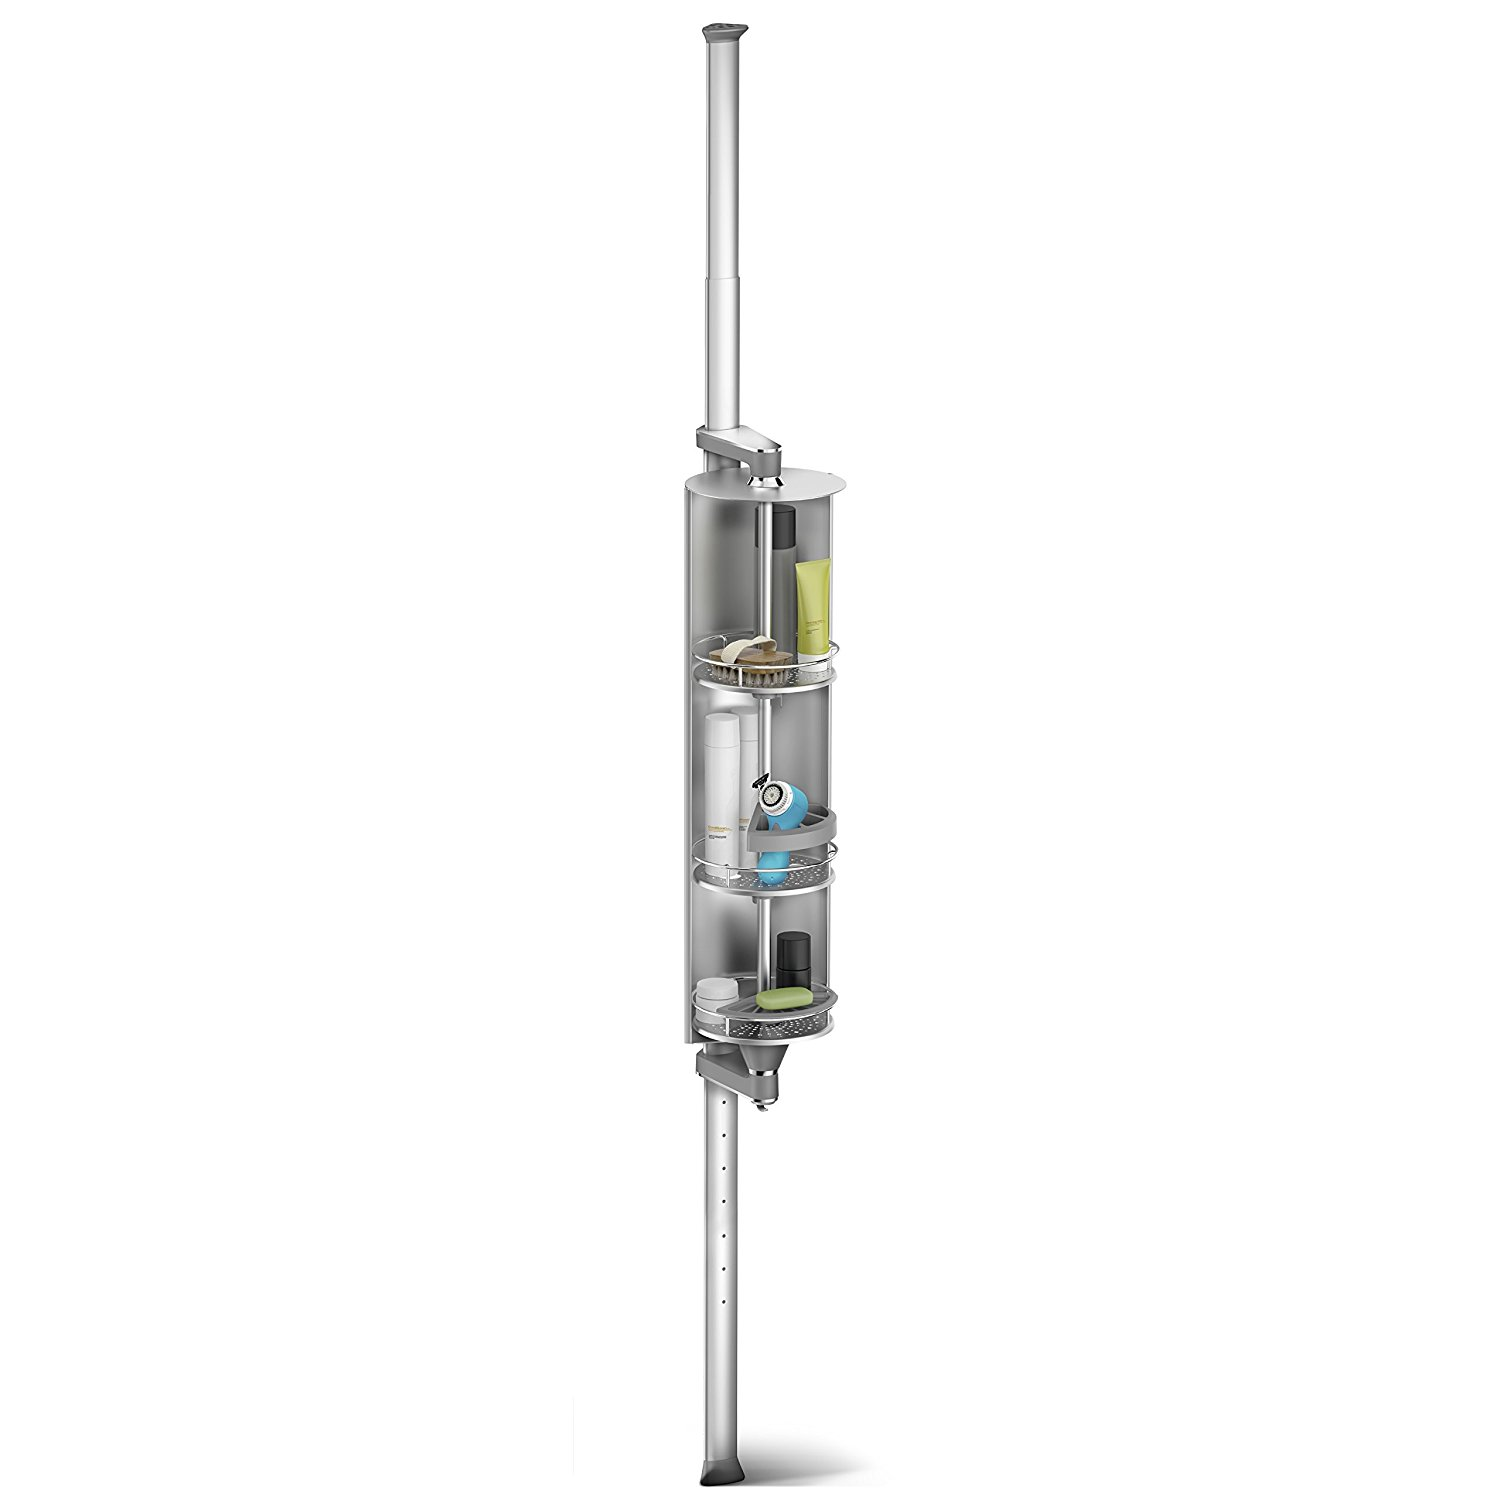 simplehuman Spin Cabinet Shower Caddy, Anodized Aluminum